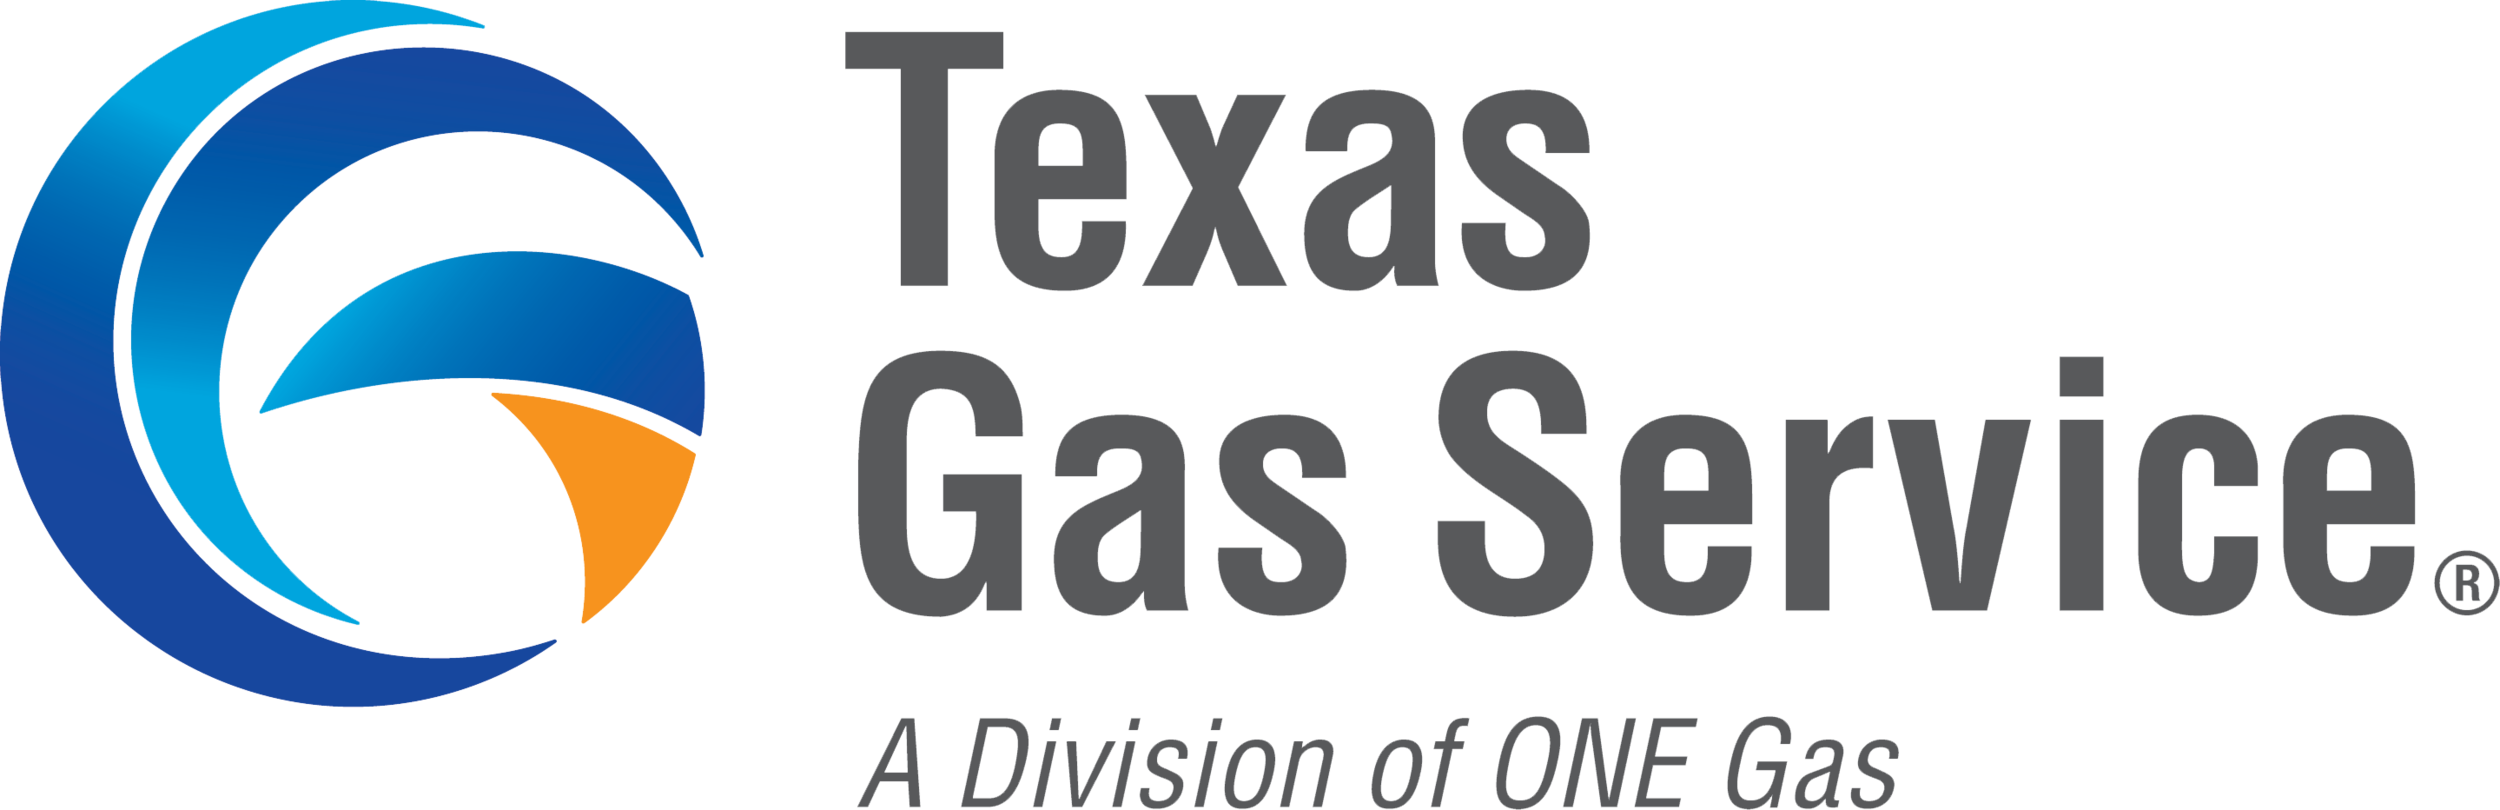 ONE Gas_TGS_CMYK-«.png